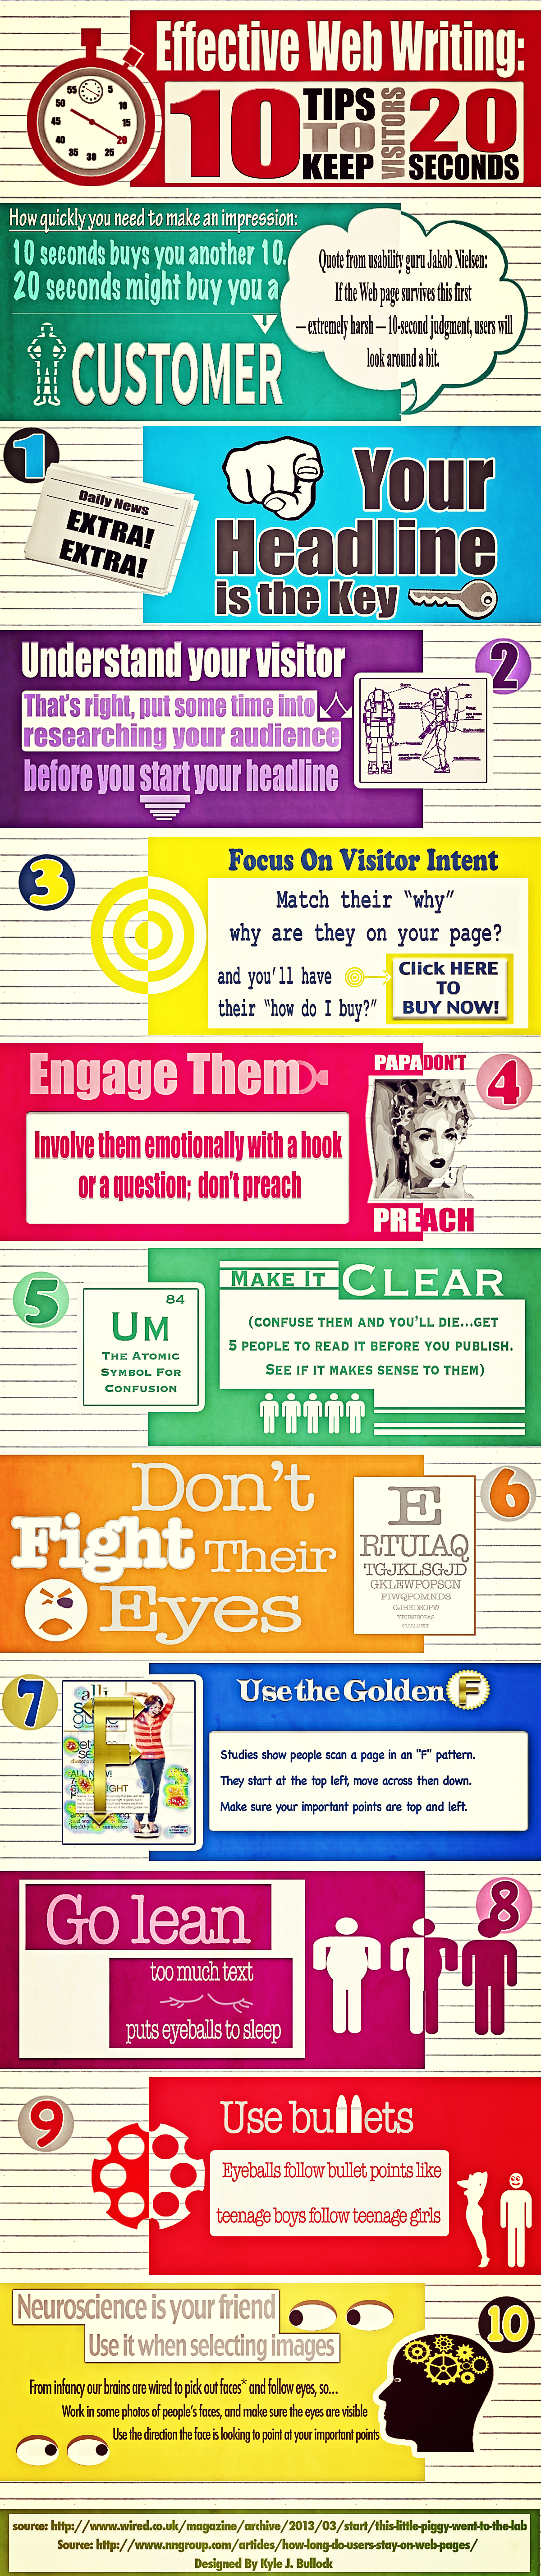 Info graphic, tips for writing engaging web content